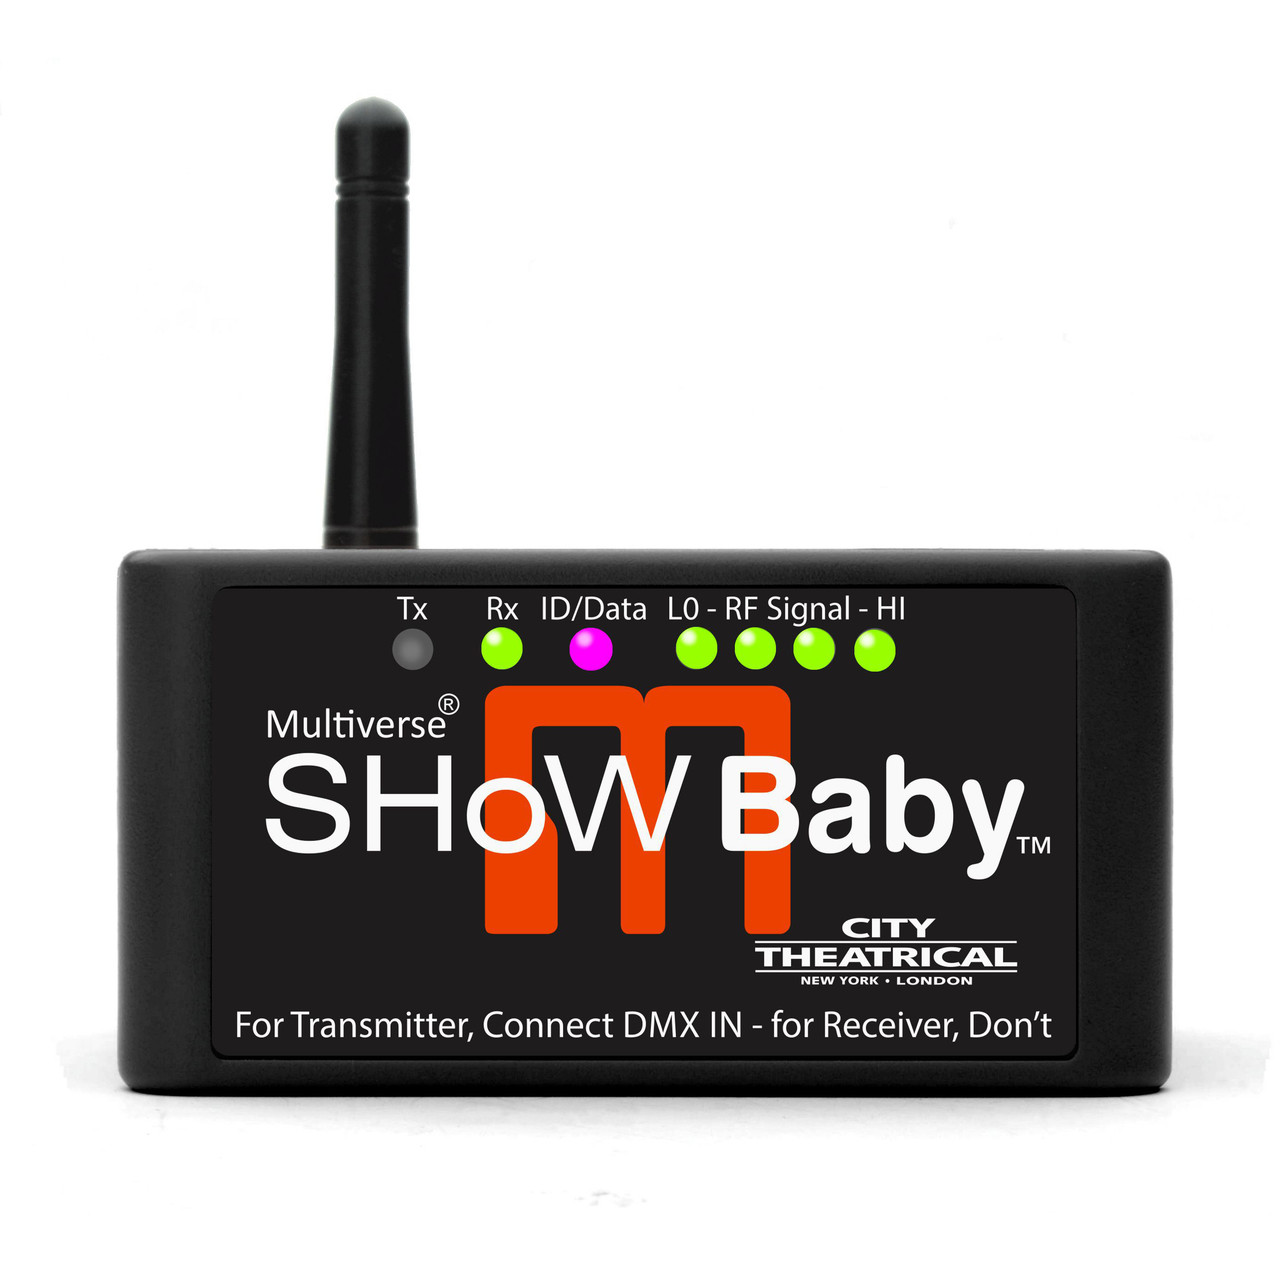 City Theatrical Multiverse SHoWBaby 5900